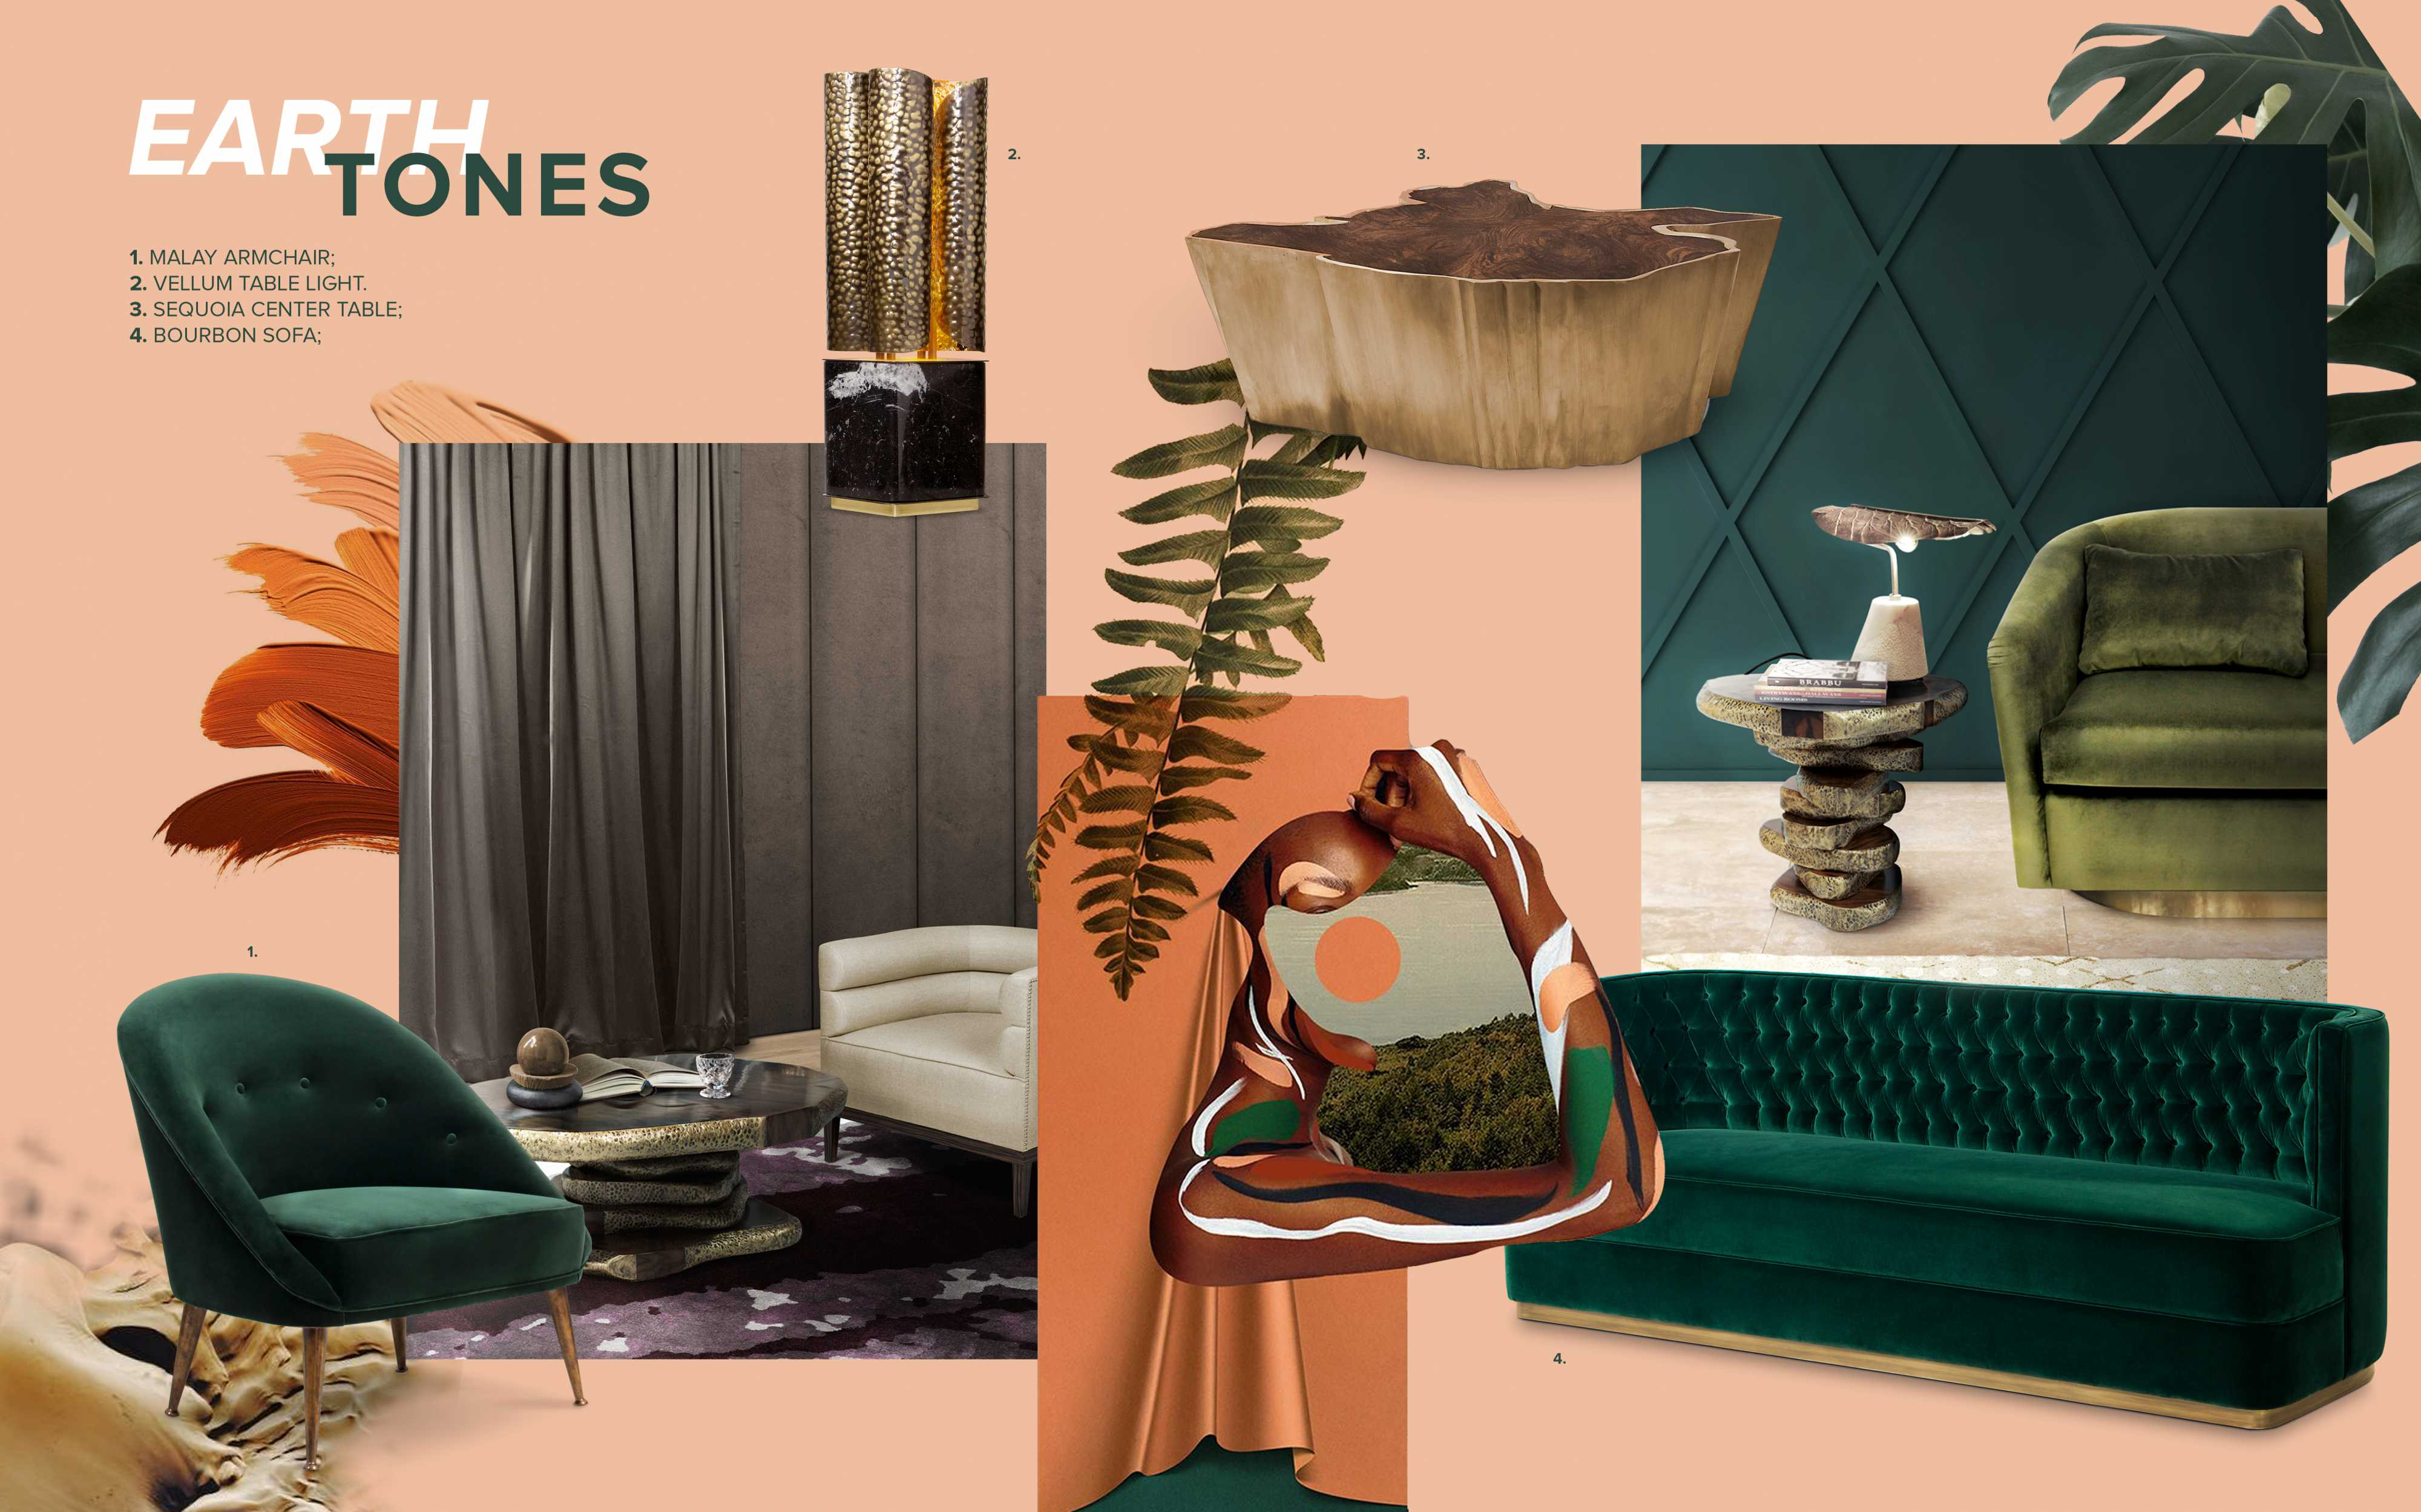 Moodboard Collection Earth Tones Interior Decor Trend For 2019 Trendbook Trend Forecasting